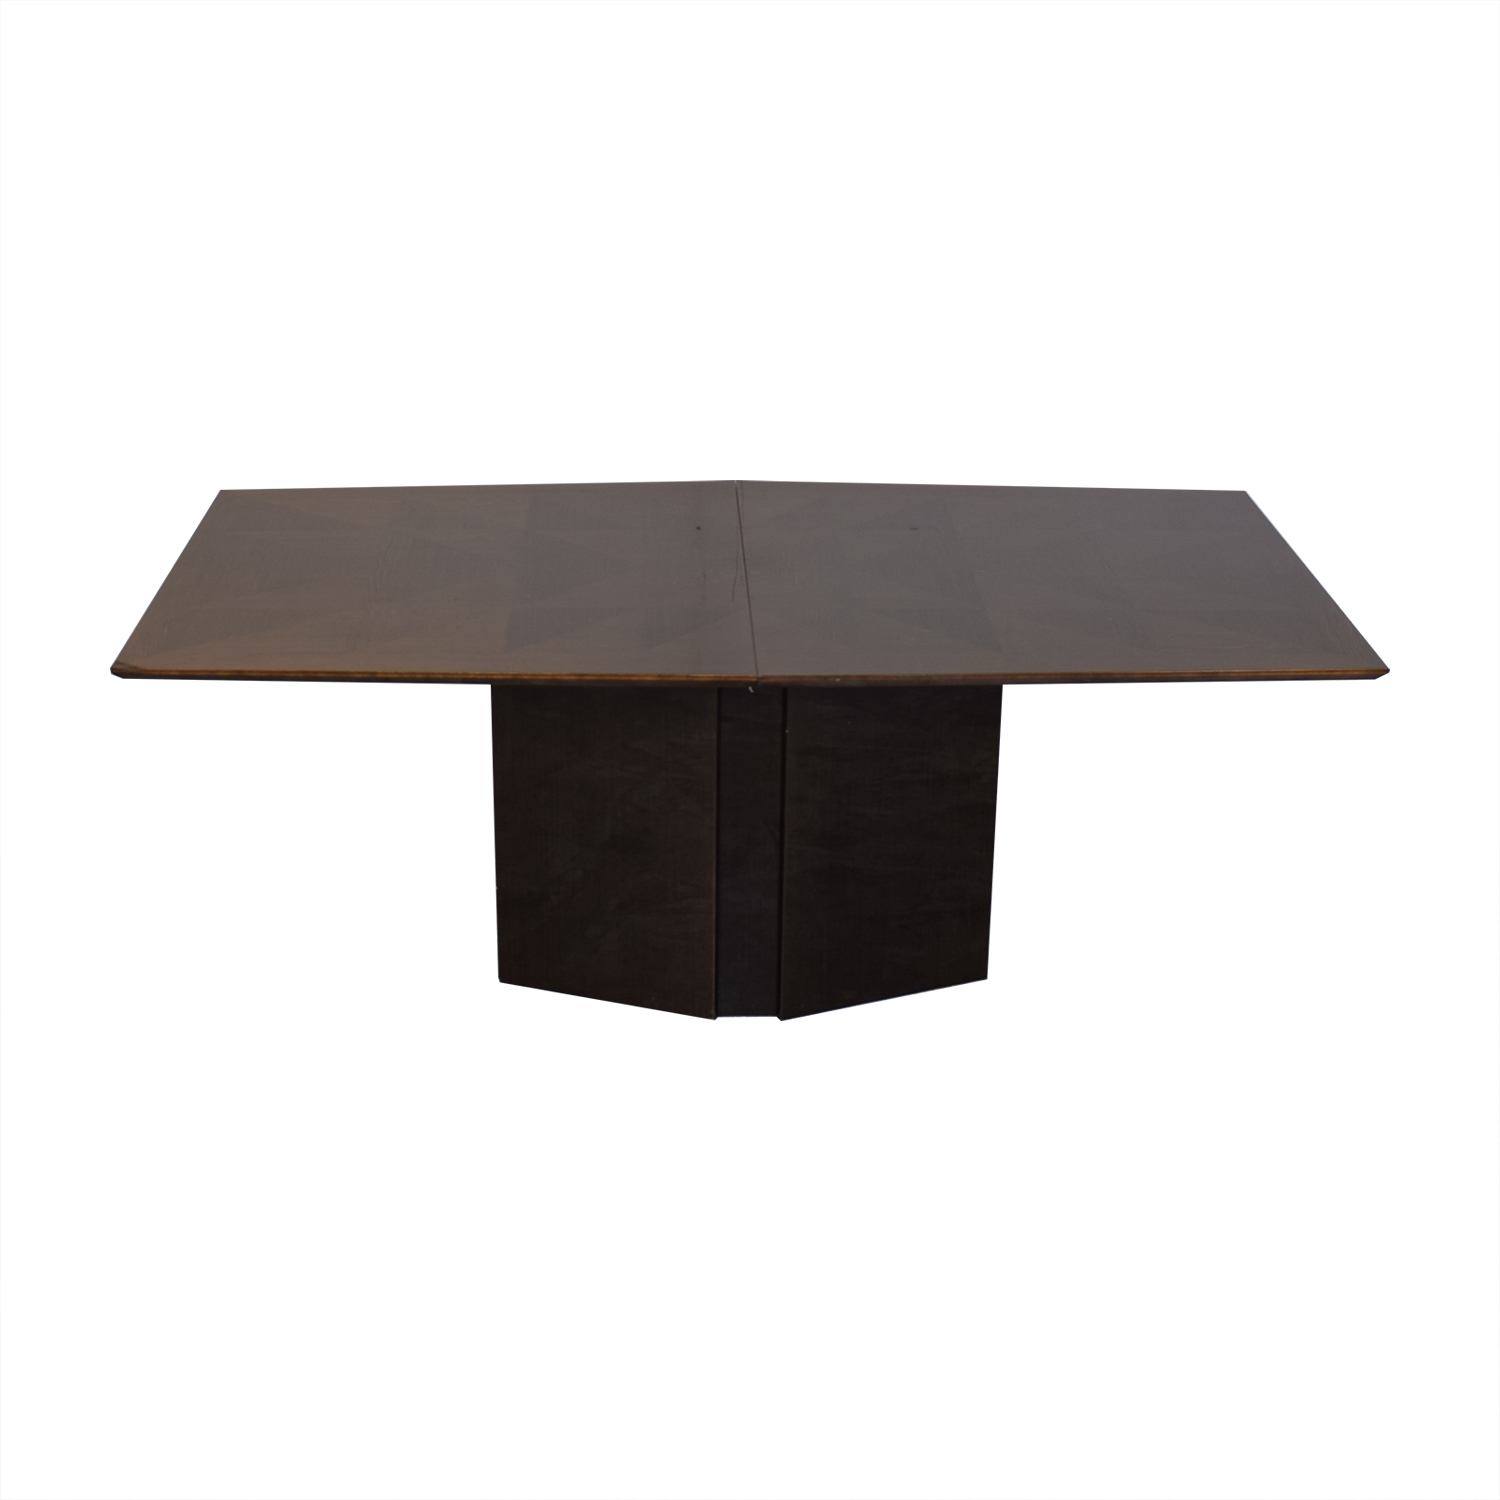 Elio Elio Dining Table with Center Leaf dimensions